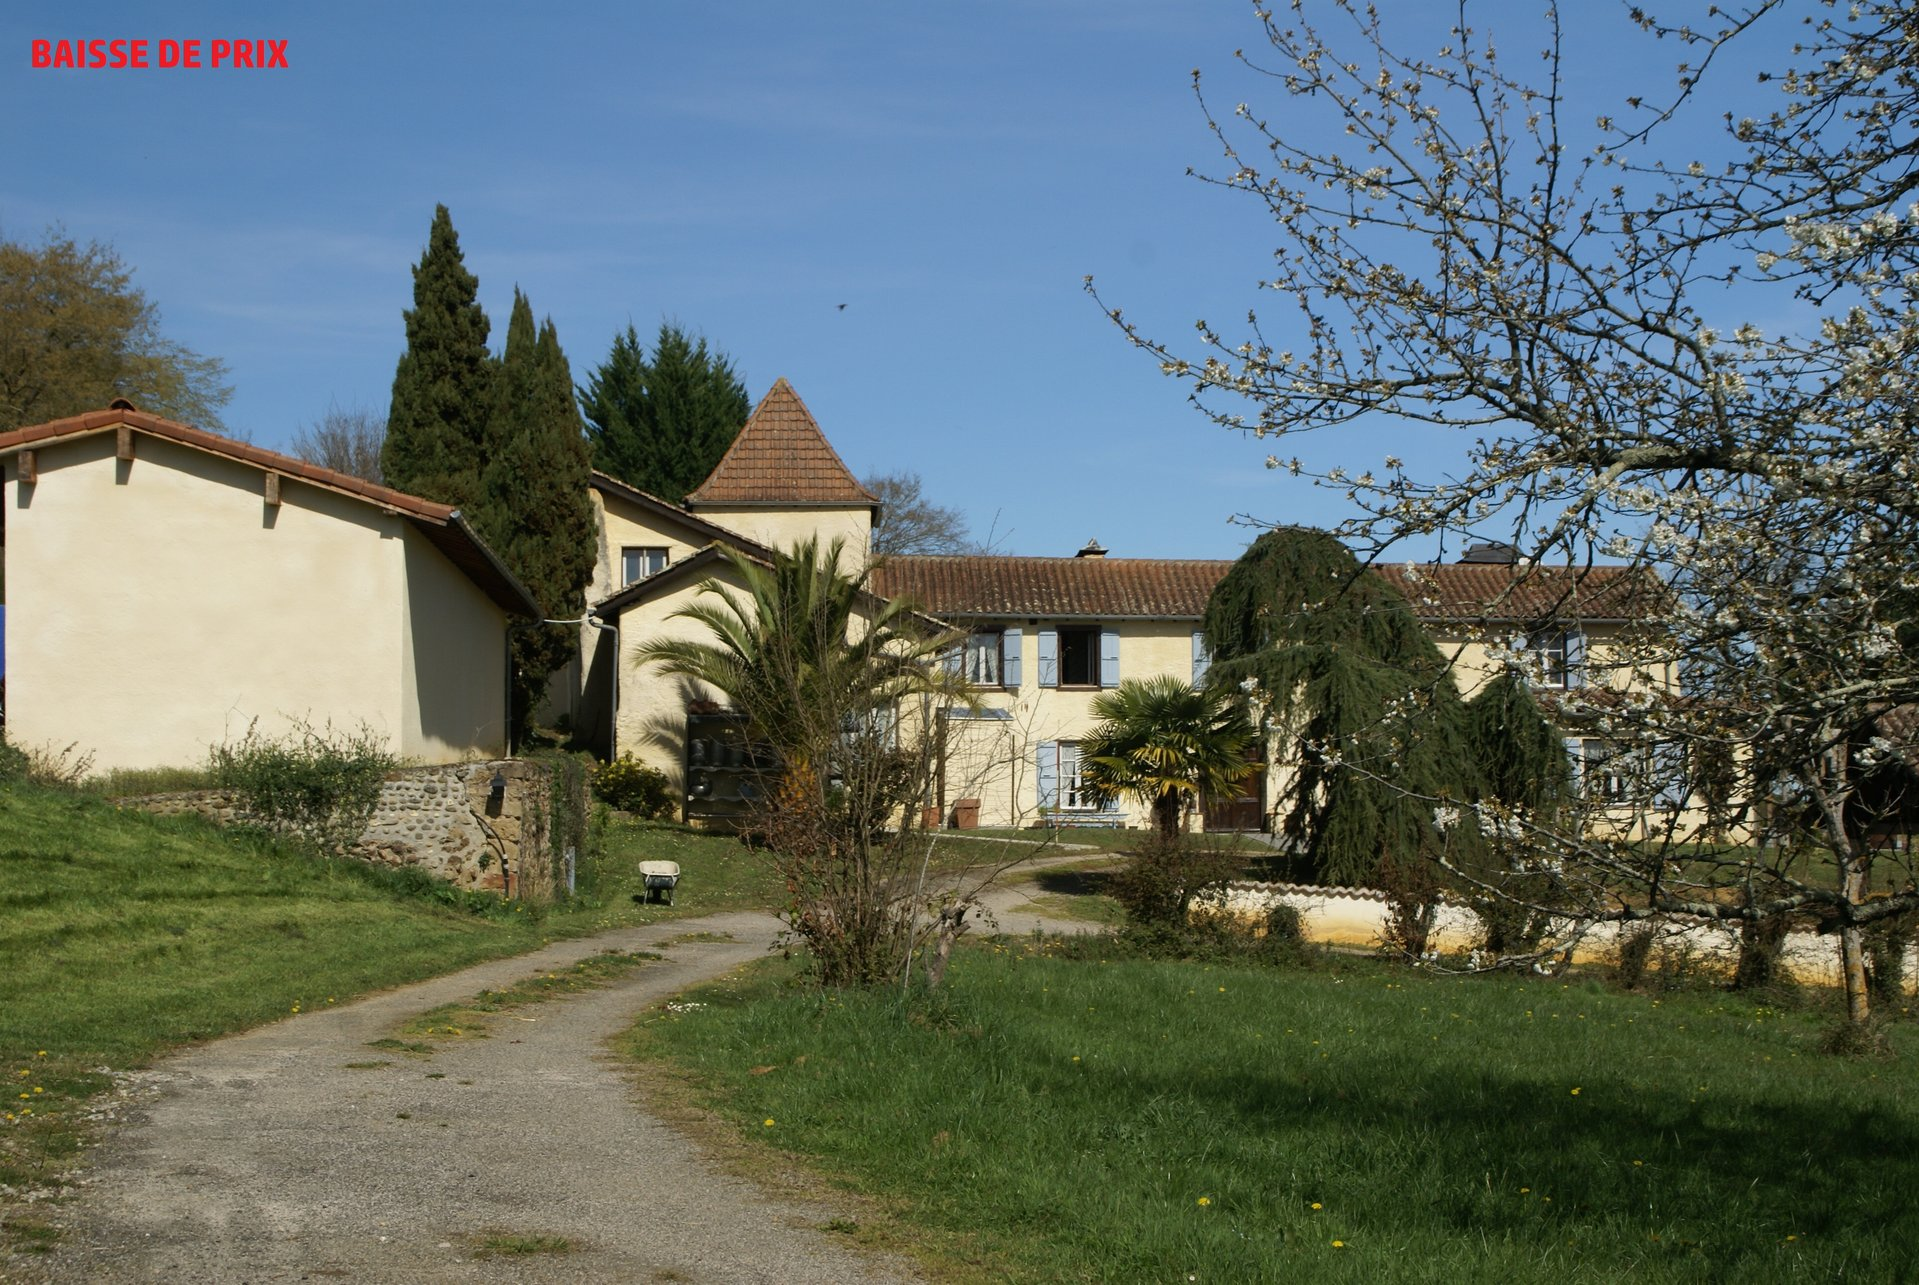 Beautiful fully restored manor with stables and gite Gers, Midi-Pyrenees.